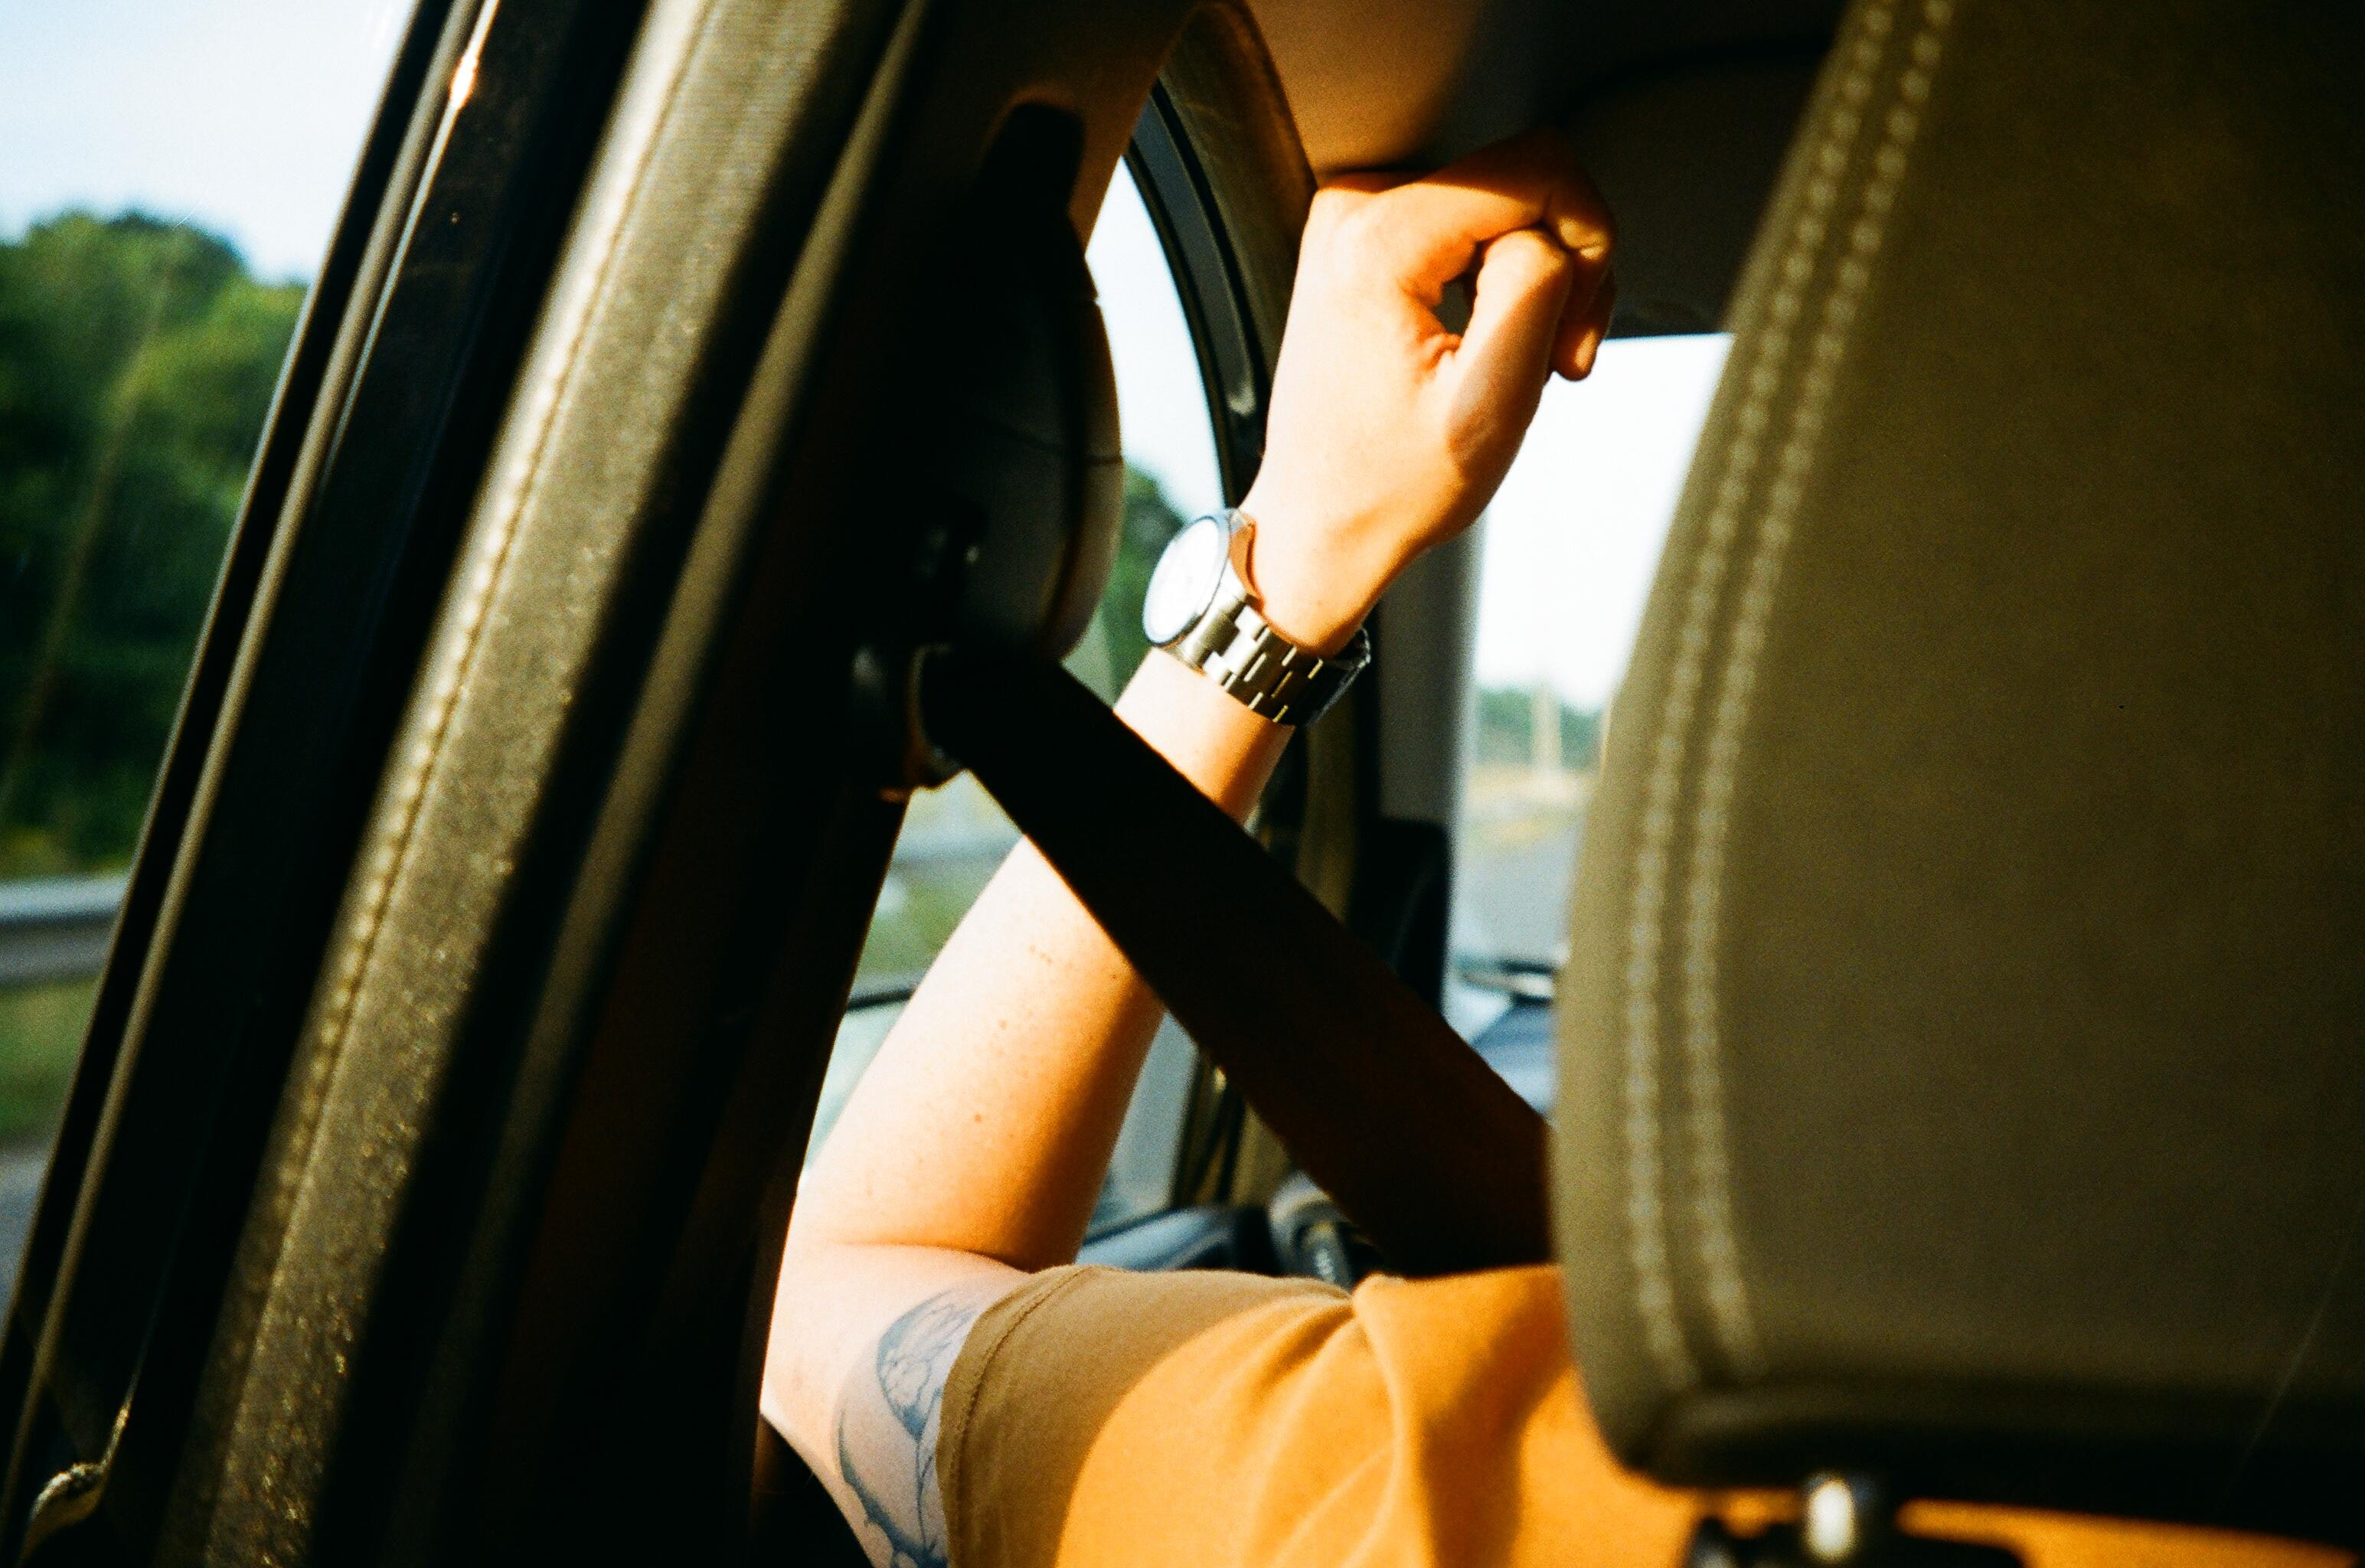 Passenger sitting in car with seatbelt on.